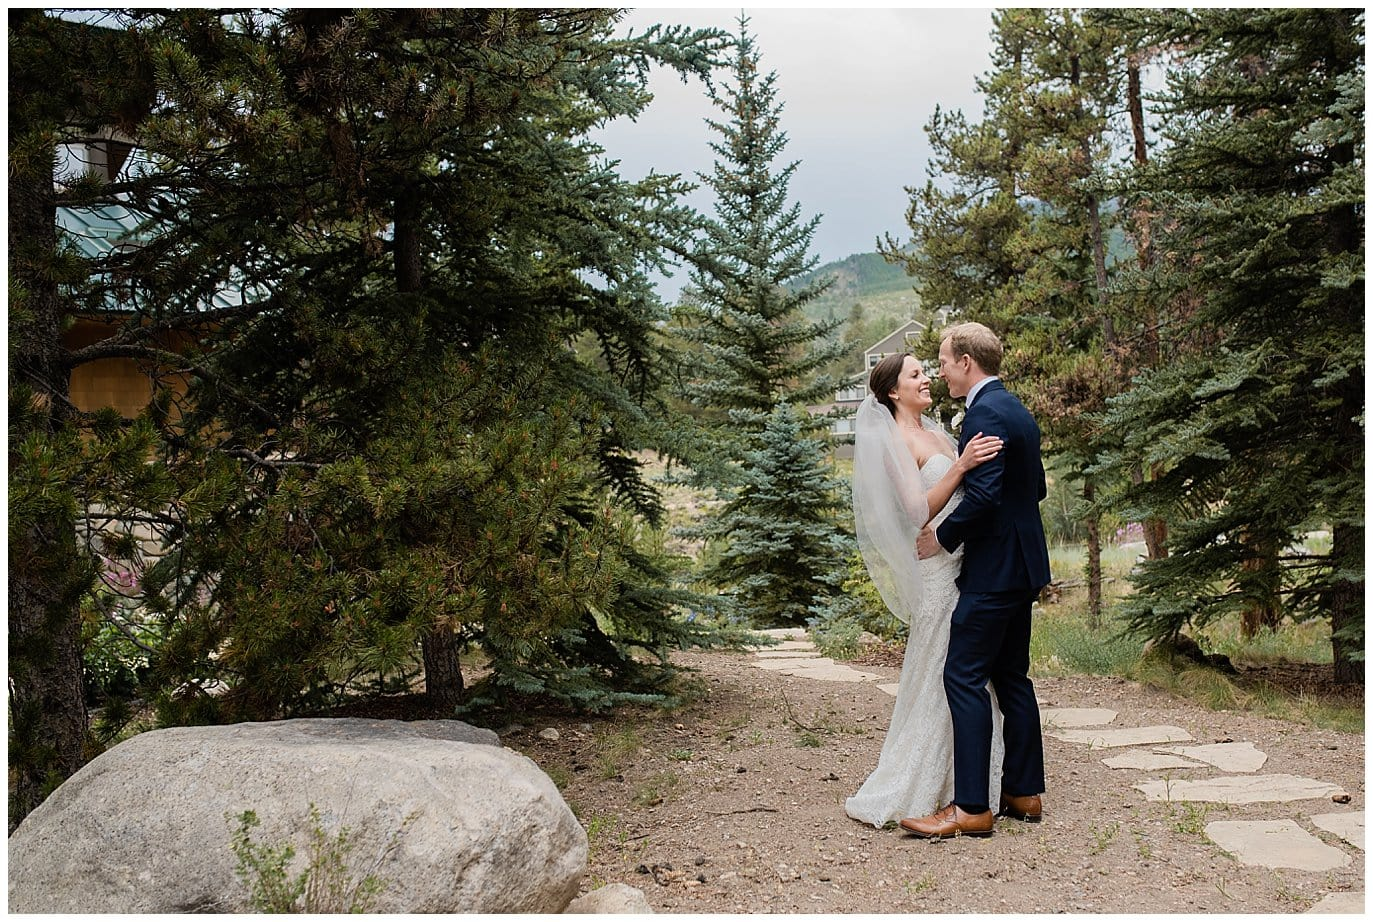 first look in colorado evergreens at Arapahoe Basin Black Mountain Lodge Wedding by Evergreen Wedding Photographer Jennie Crate